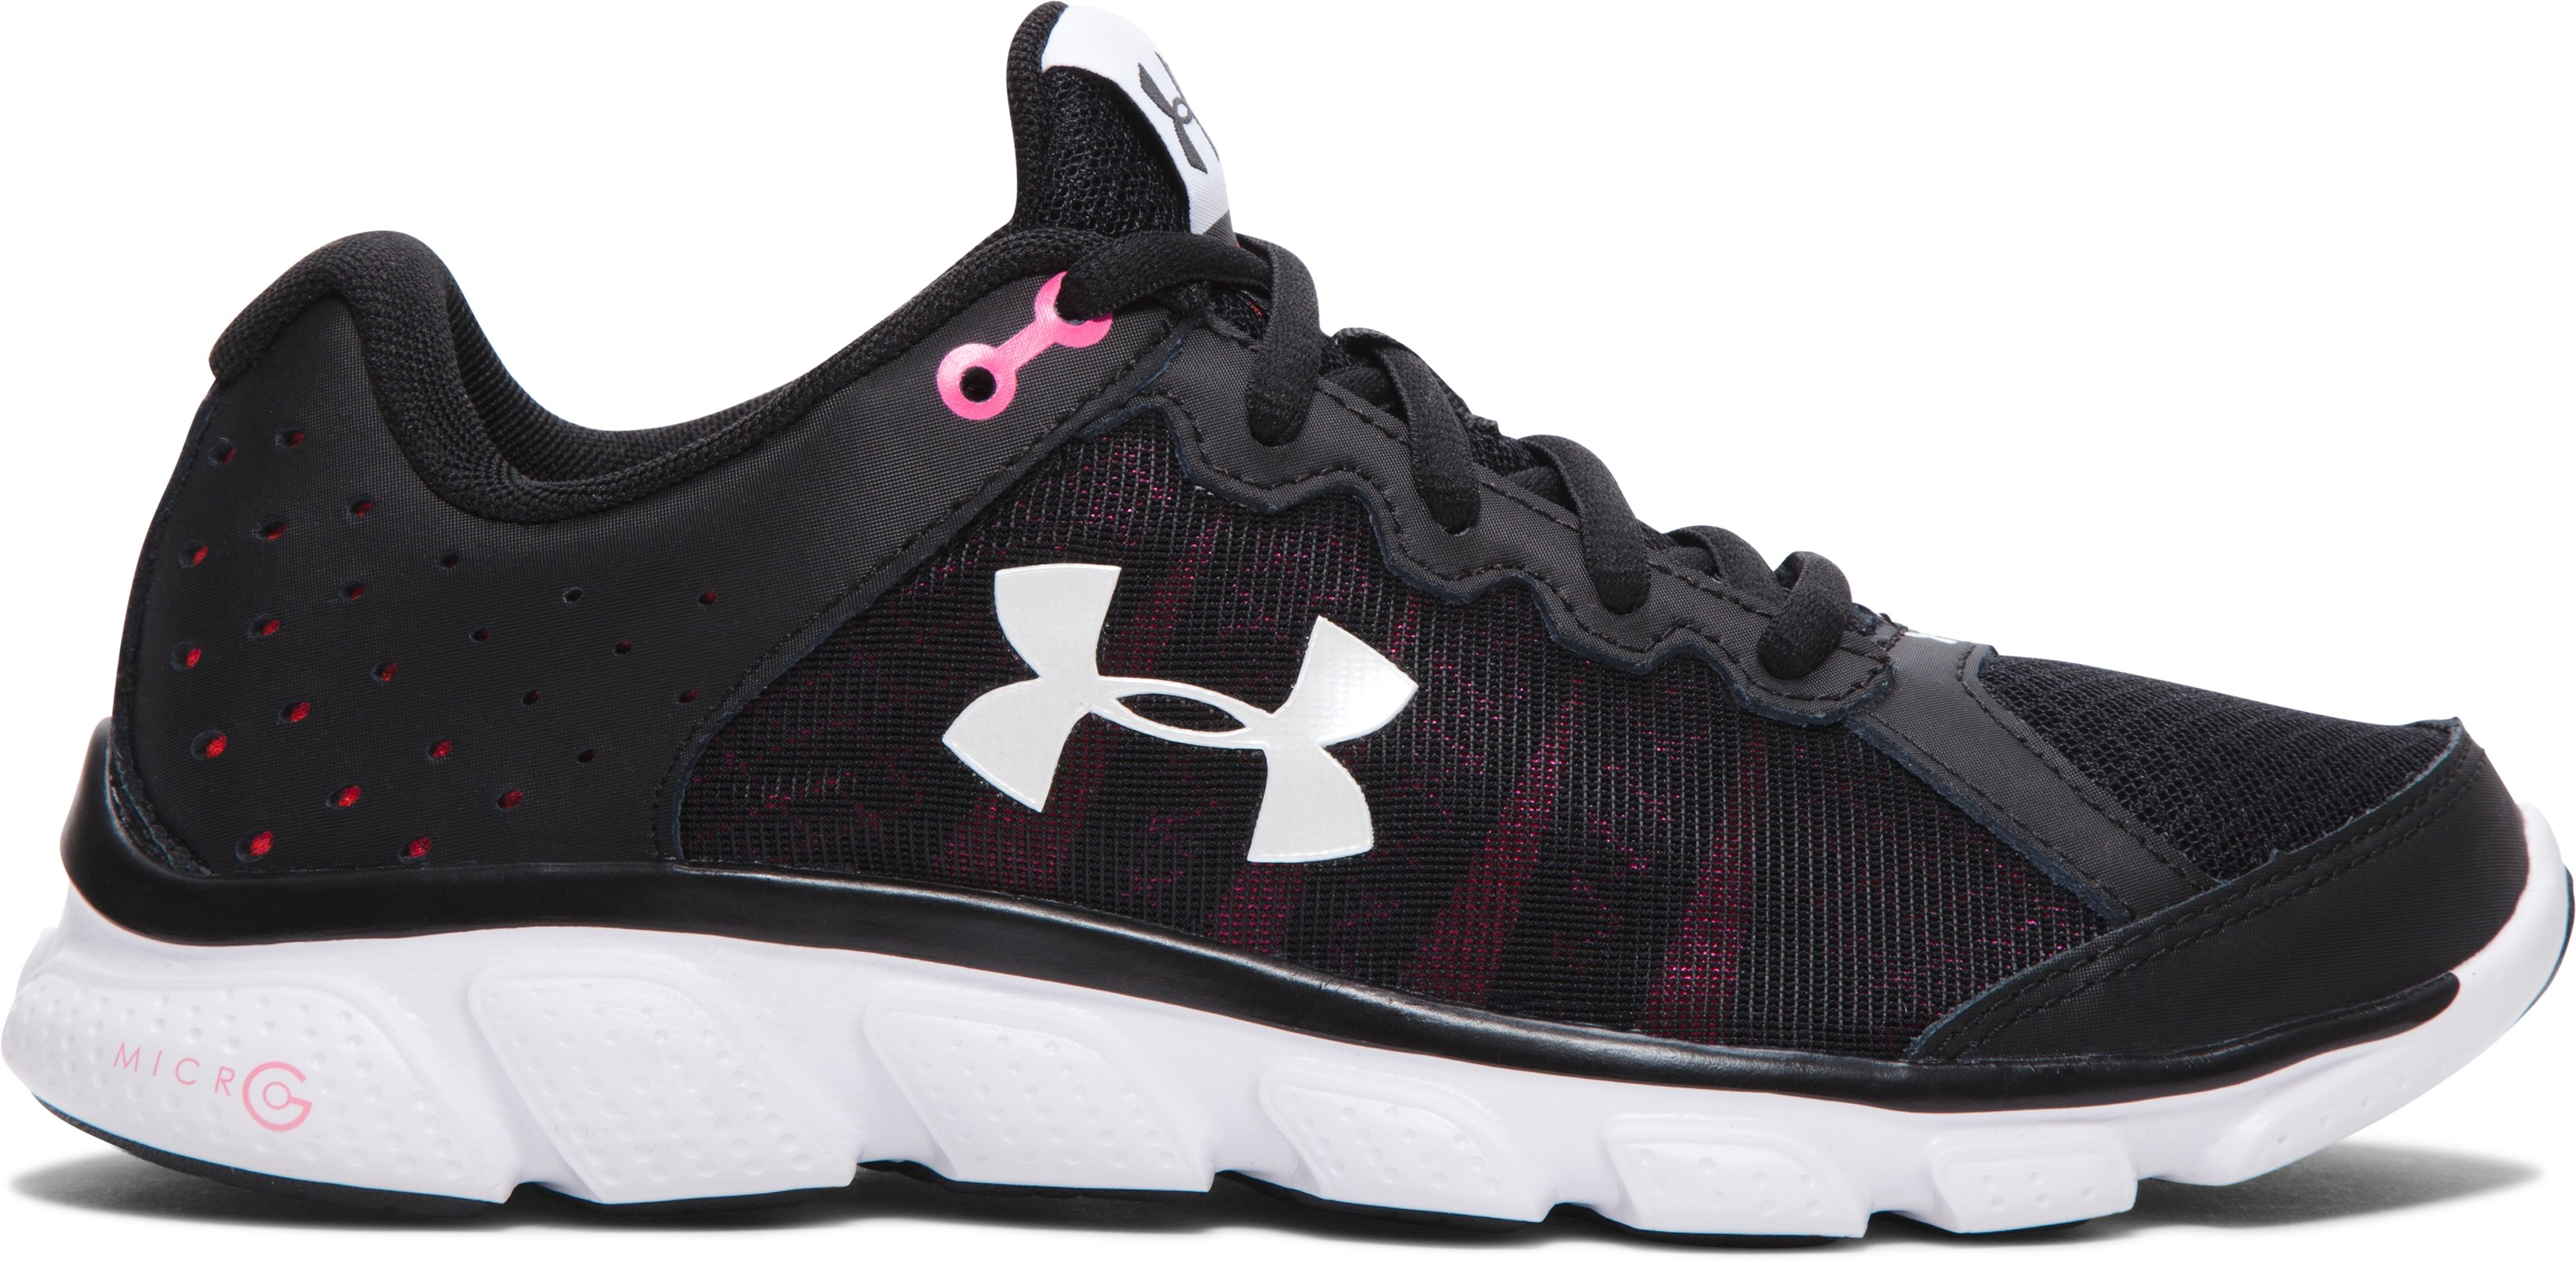 Women's UA Micro G® Assert 6 Running Shoes 2 Colors $52.49 - $52.99